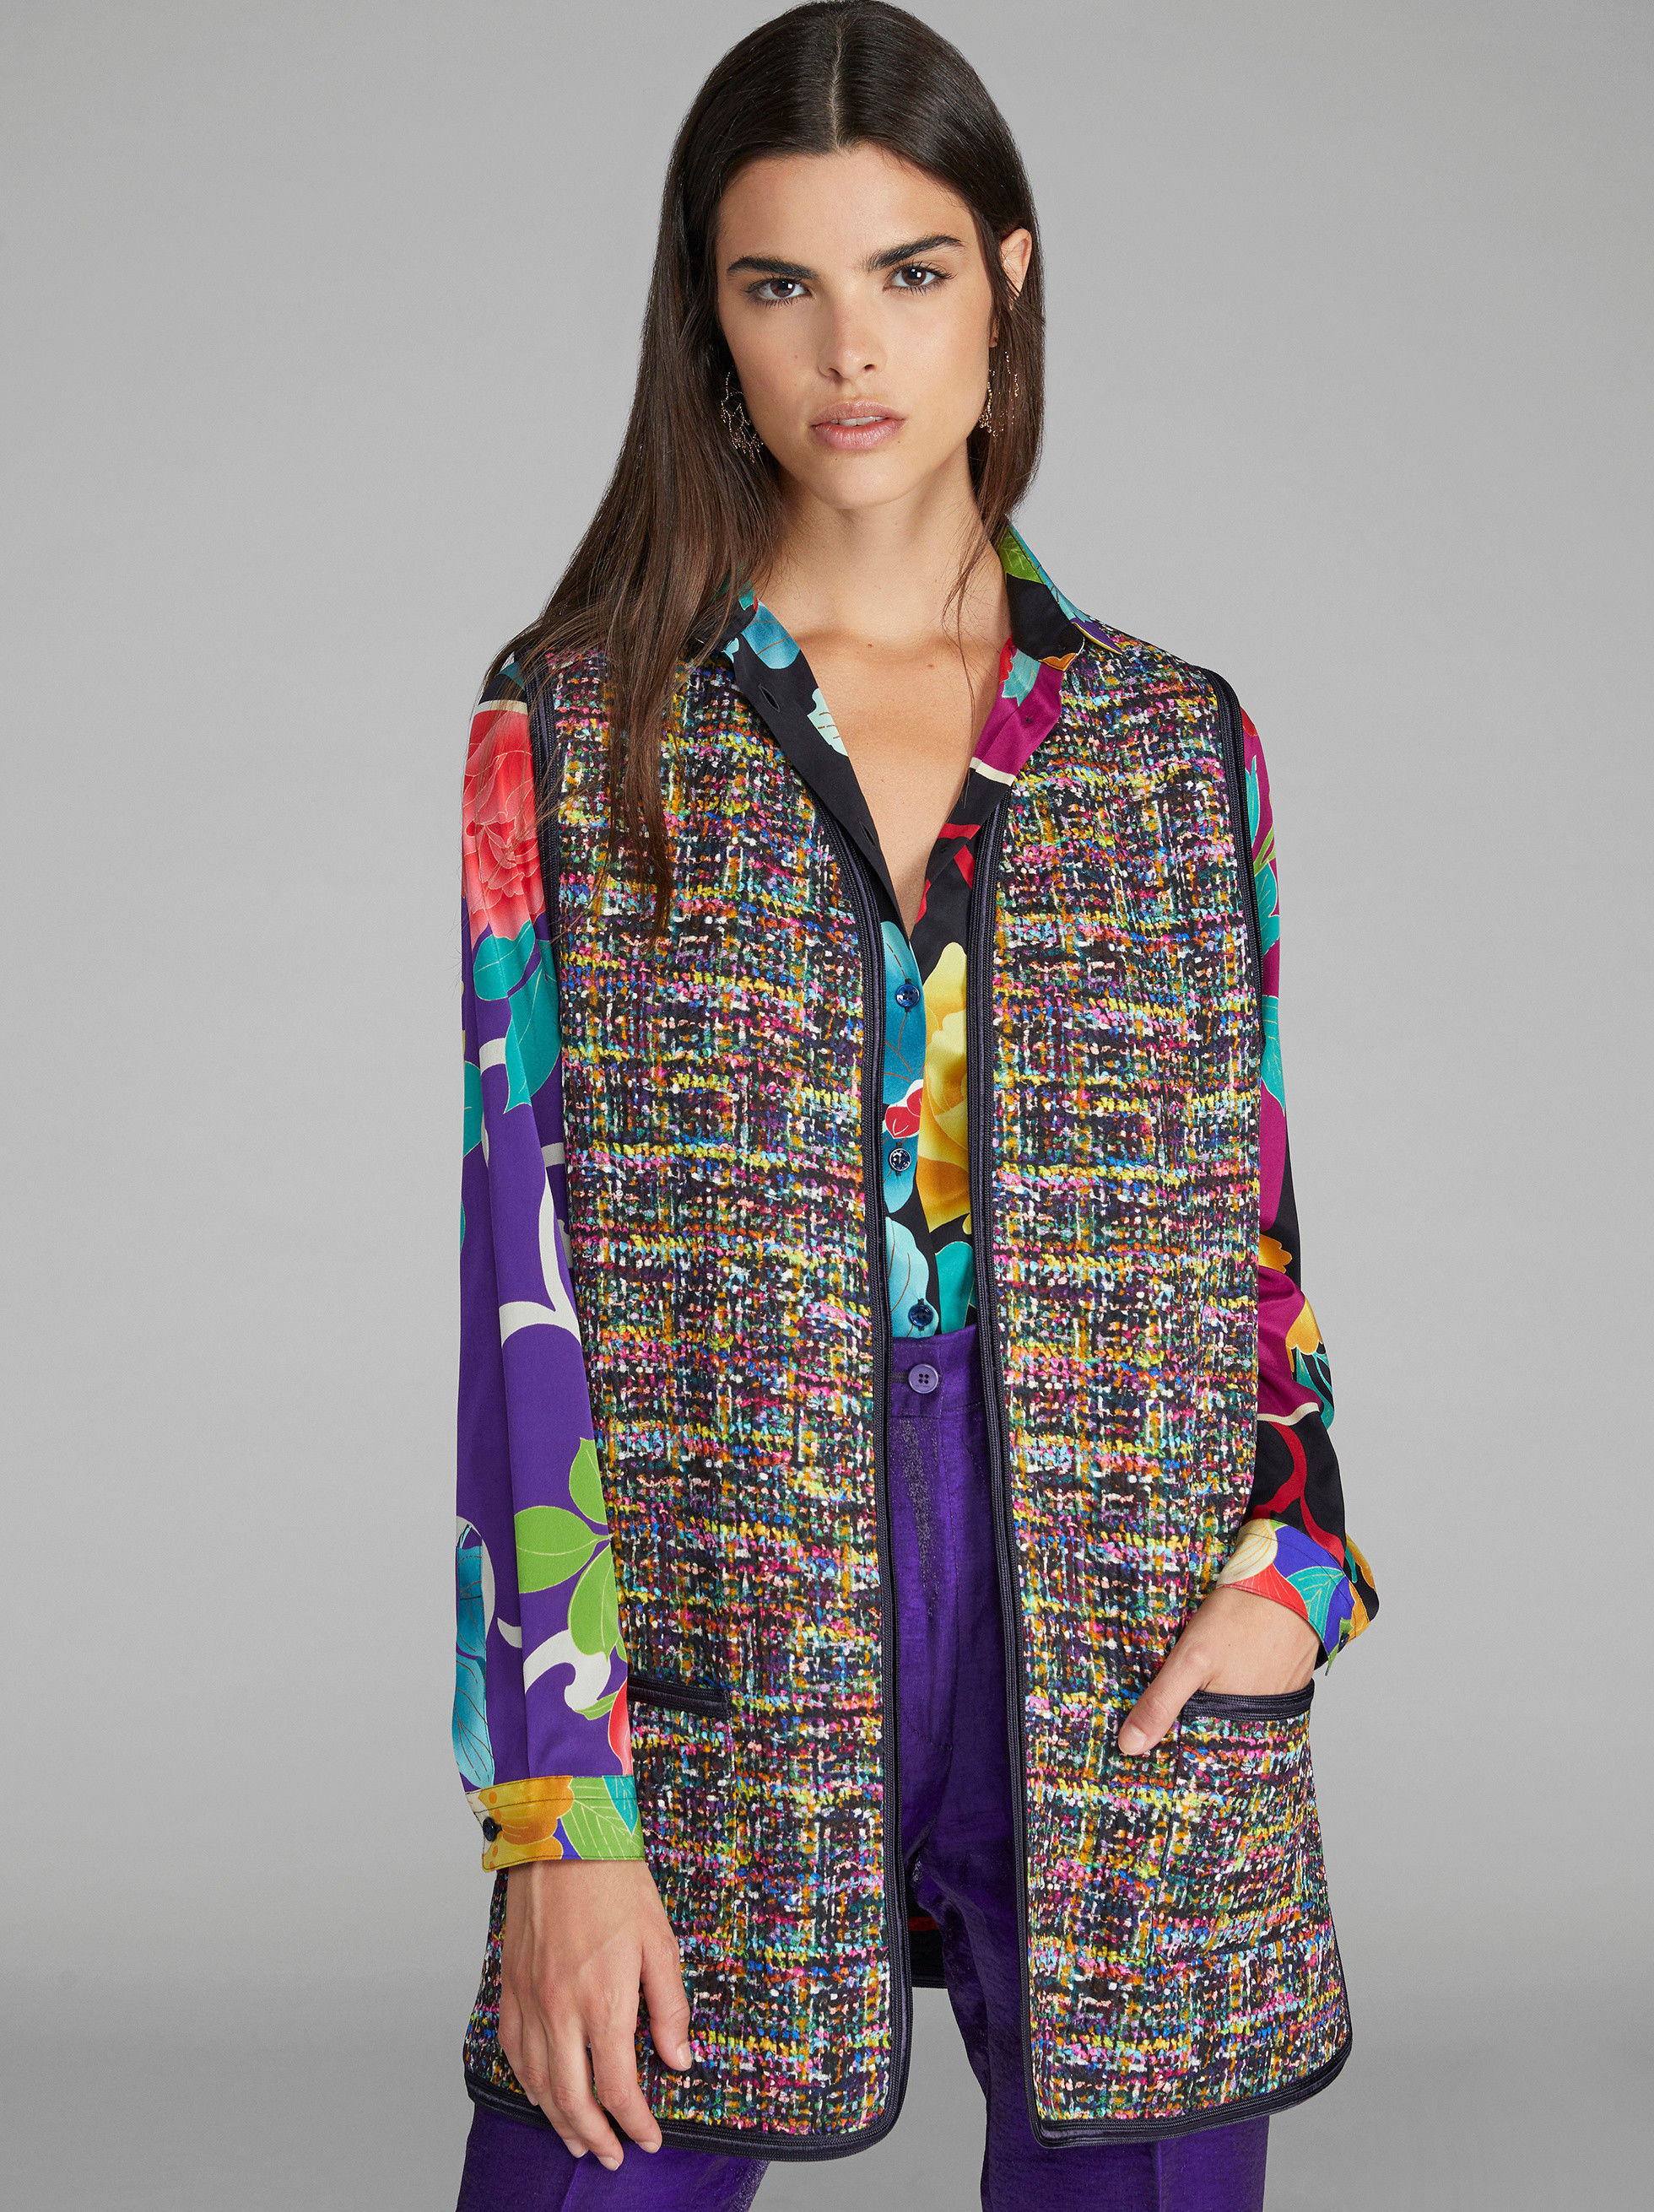 DOUBLE-SIDED MATELASSÉ SLEEVELESS JACKET